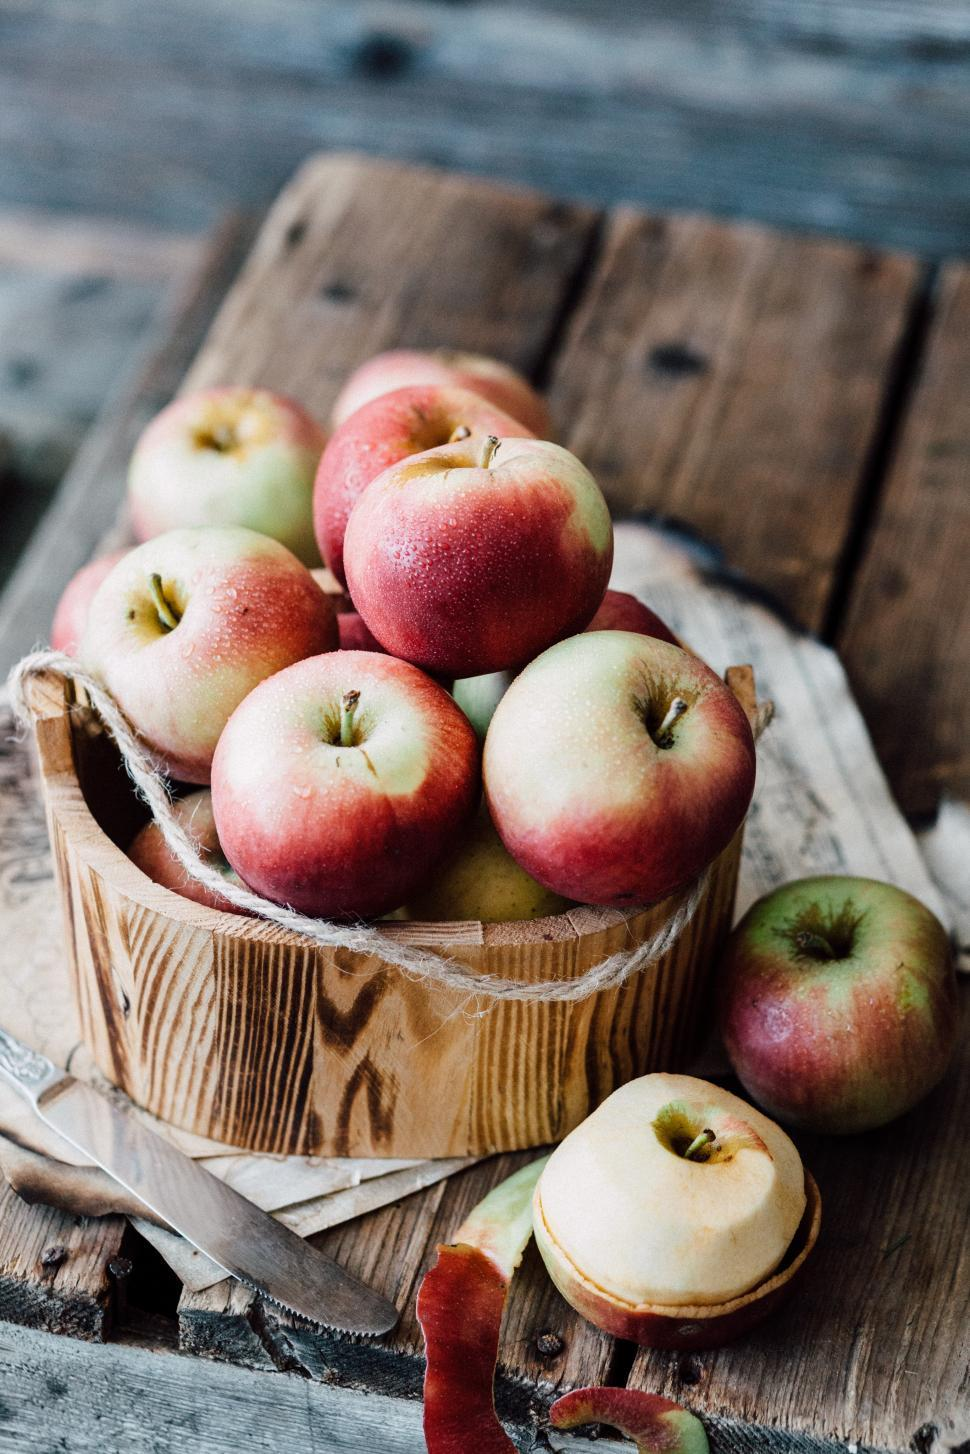 Download Free Stock HD Photo of Close-up of fresh red apples on wooden desk Online